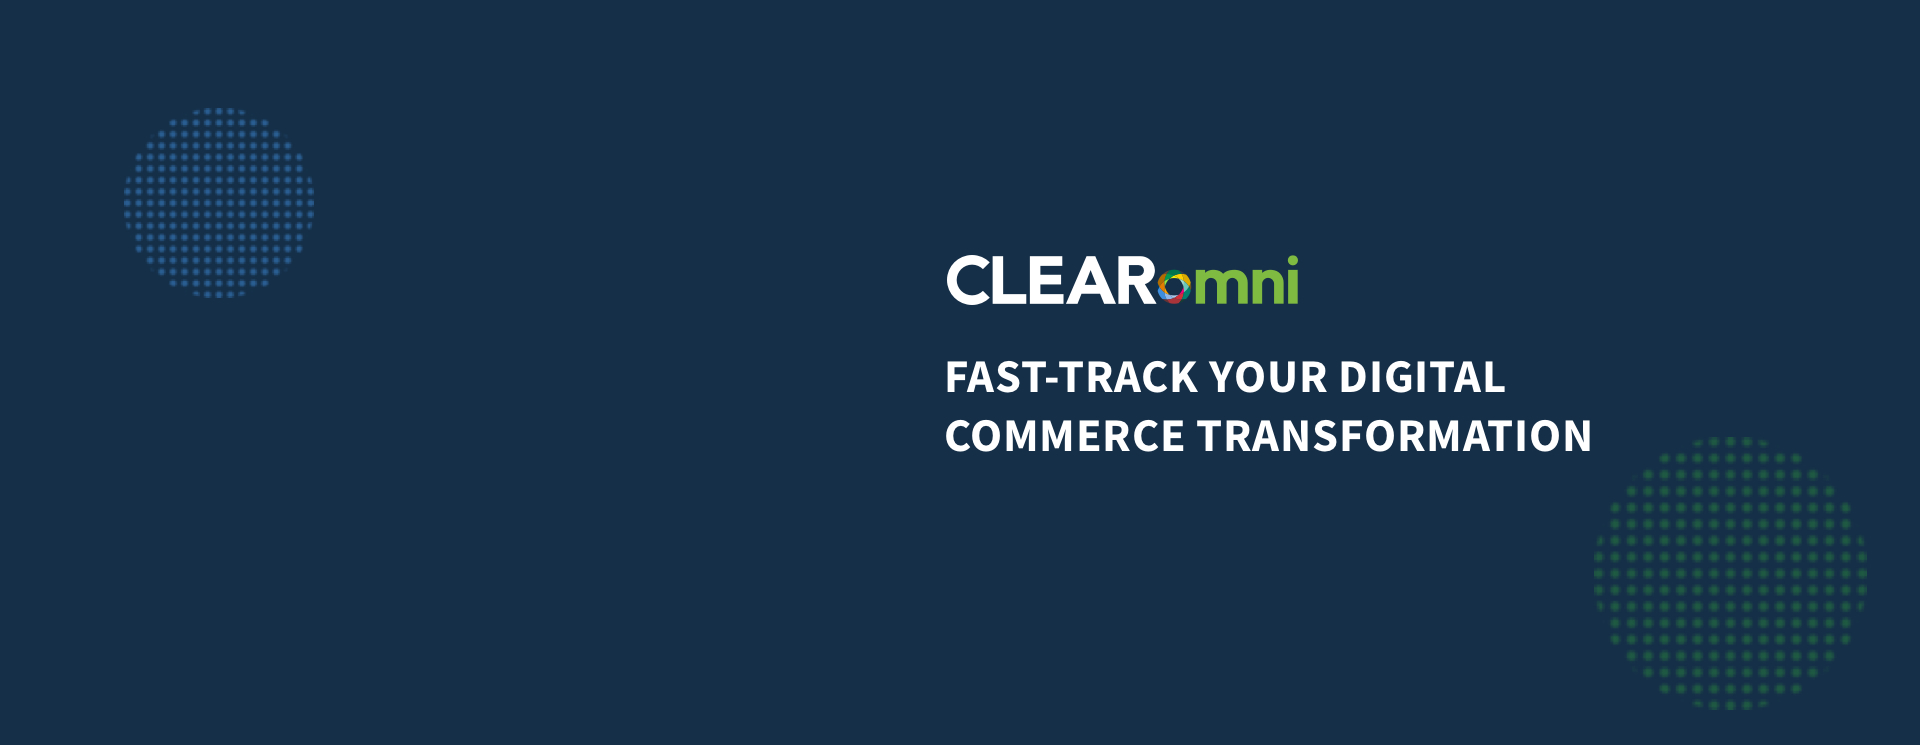 CLEARomni FAST-TRACT YOUR DIGITAL COMMERCE TRANSFORMATION